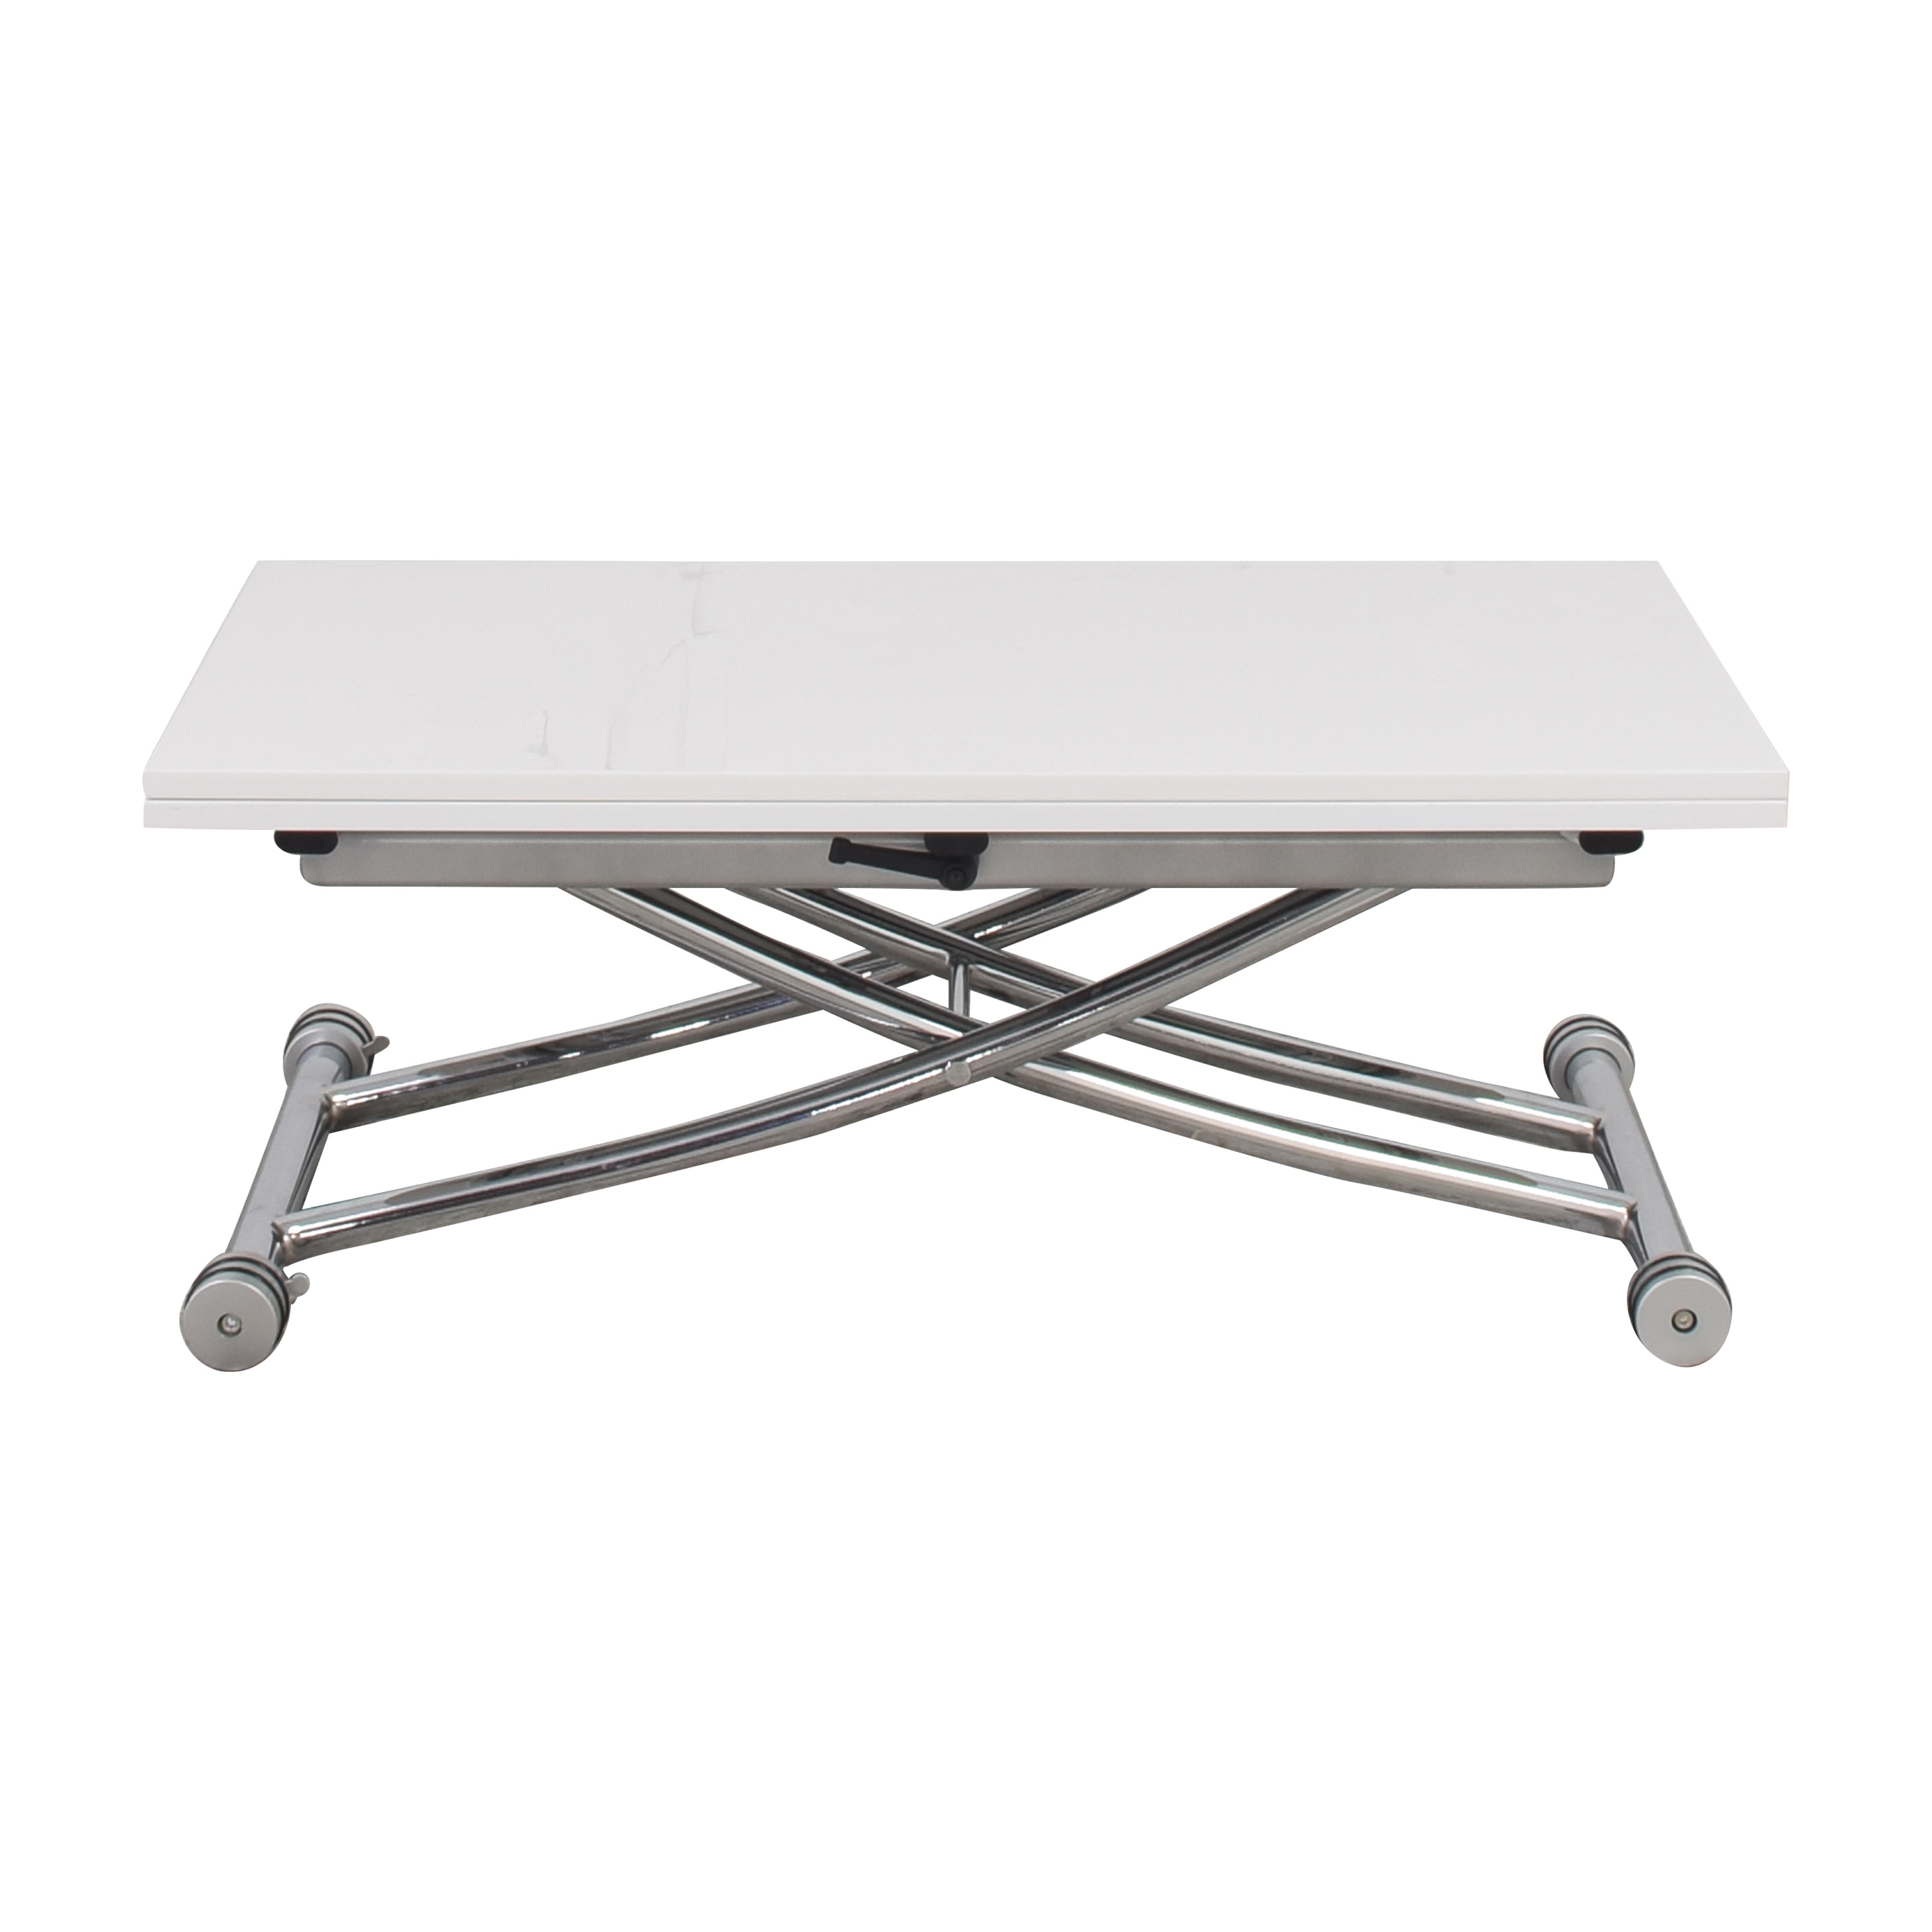 Expand Furniture Transforming Table Space Saver / Tables